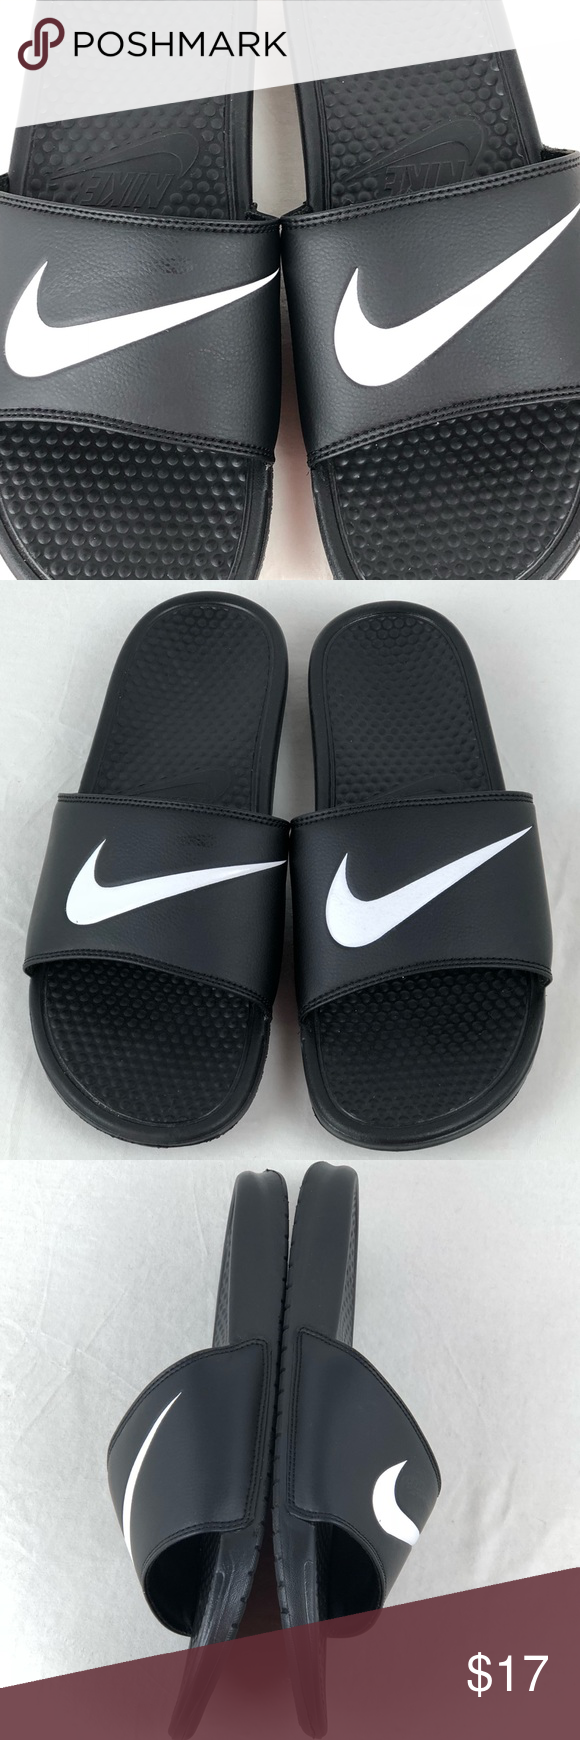 reputable site 9330c 10202 Nike Benassi Swoosh Slide Sandals 312618-011 Sz 14 The Nike Benassi Swoosh Mens  Slide